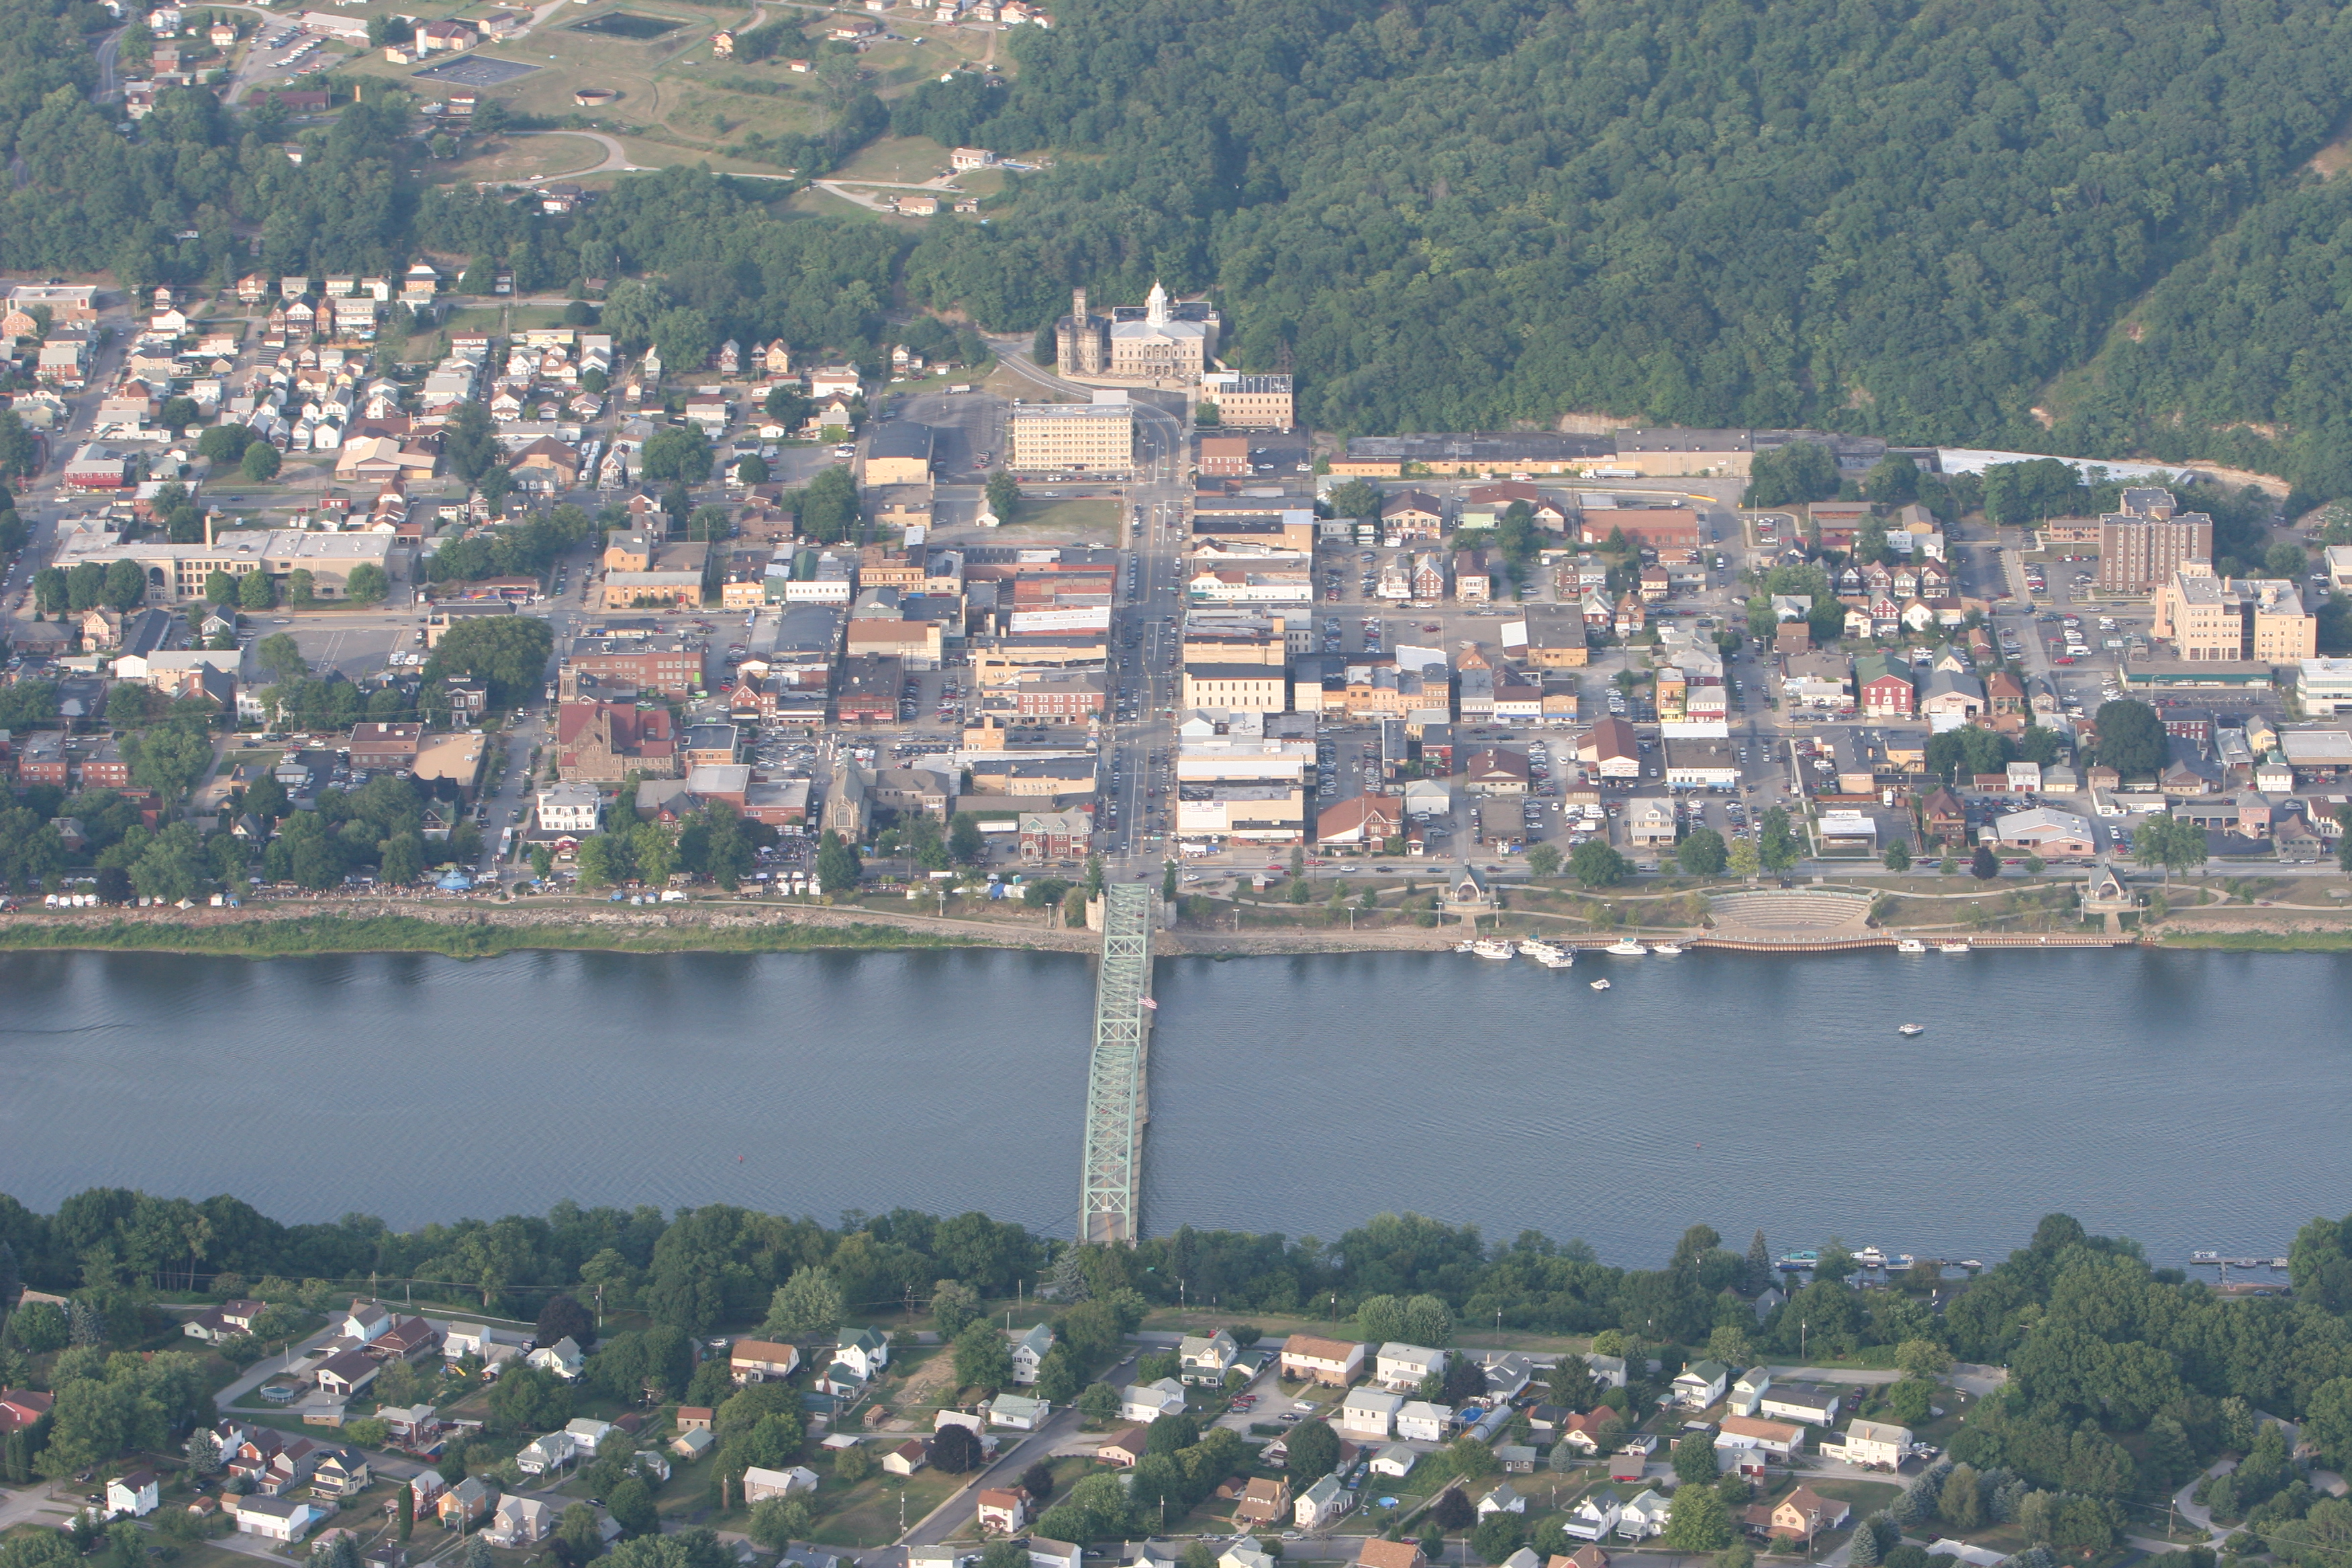 Kittanning From Above